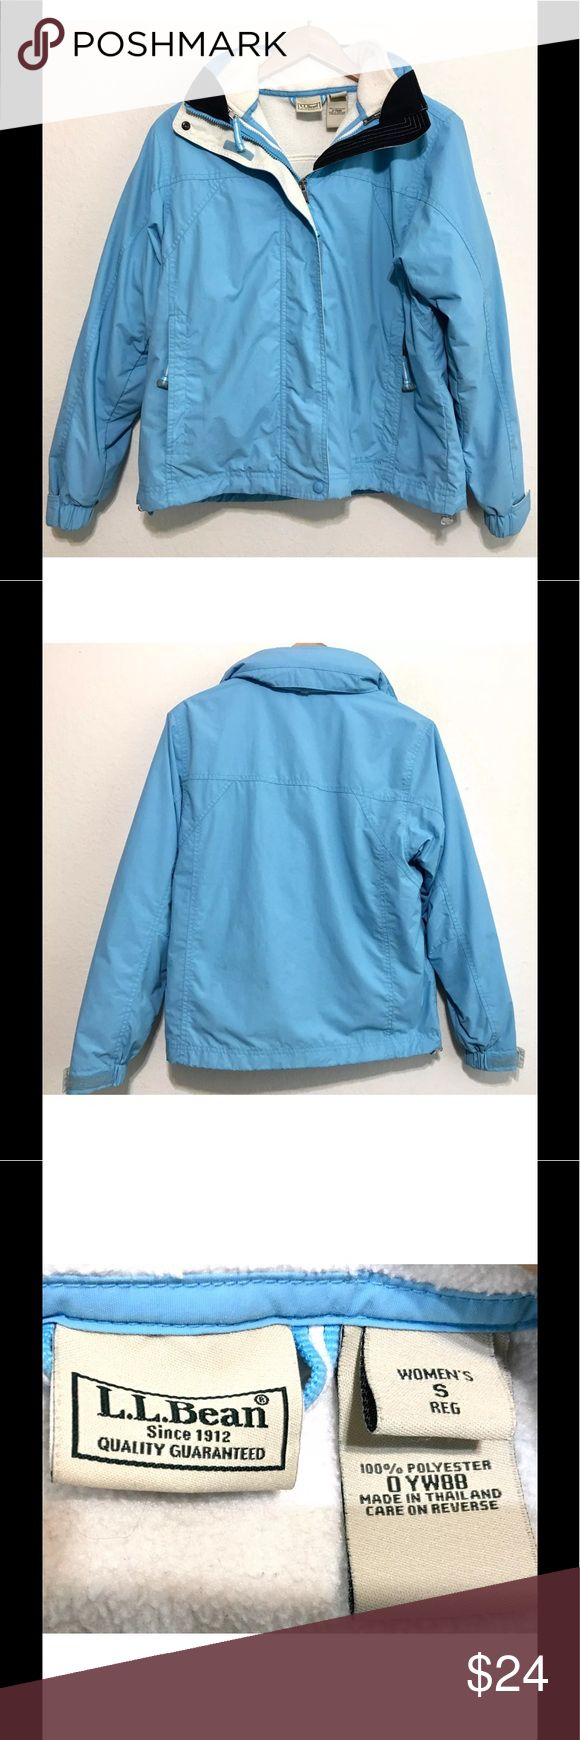 """LL Bean Women's Rain Jacket Beautiful Blue Size S Size: Small. Please check the following actual measurements to ensure a great fit: Armpit to armpit 21"""", armpit seam to sleeve end 22"""", collar bottom to bottom of jacket 24"""" L.L. Bean Jackets & Coats Utility Jackets"""